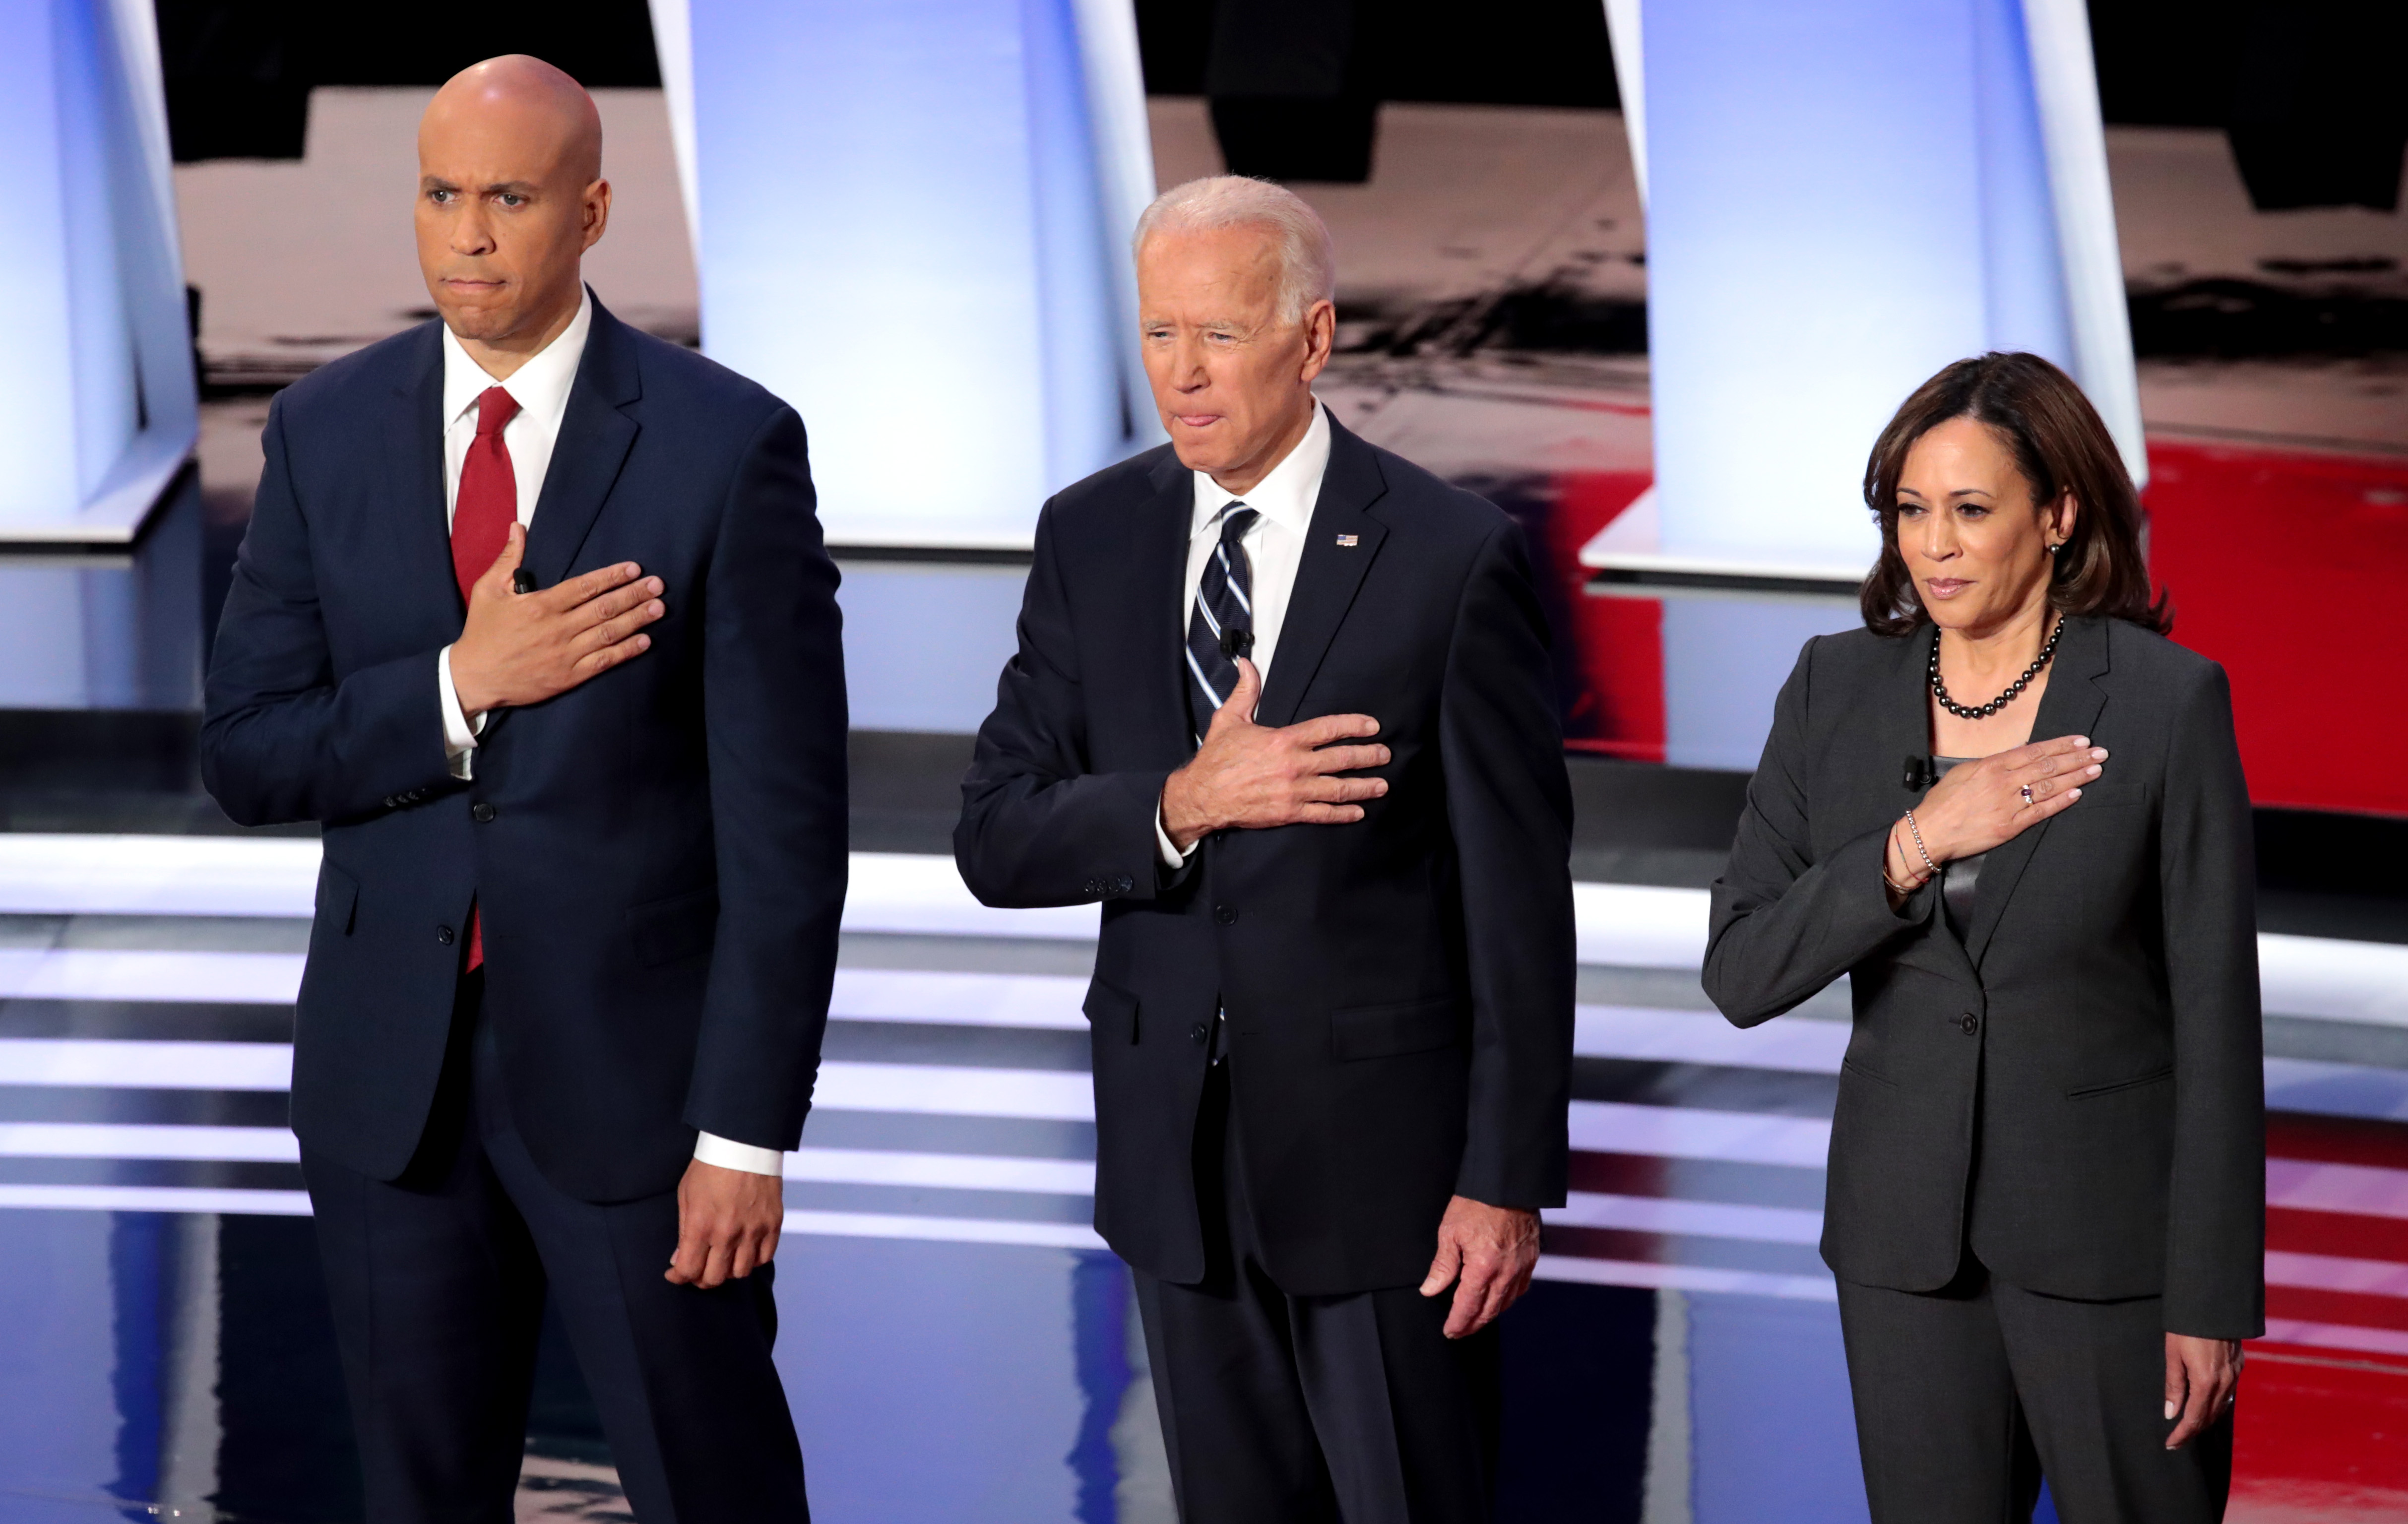 DETROIT, MICHIGAN - JULY 31: Democratic presidential candidates Sen. Cory Booker (D-NJ) (L-R), former Vice President Joe Biden, Sen. and Kamala Harris (D-CA) take the stage at the Democratic Presidential Debate at the Fox Theatre July 31, 2019 in Detroit, Michigan. 20 Democratic presidential candidates were split into two groups of 10 to take part in the debate sponsored by CNN held over two nights at Detroit's Fox Theatre. (Photo by Scott Olson/Getty Images)